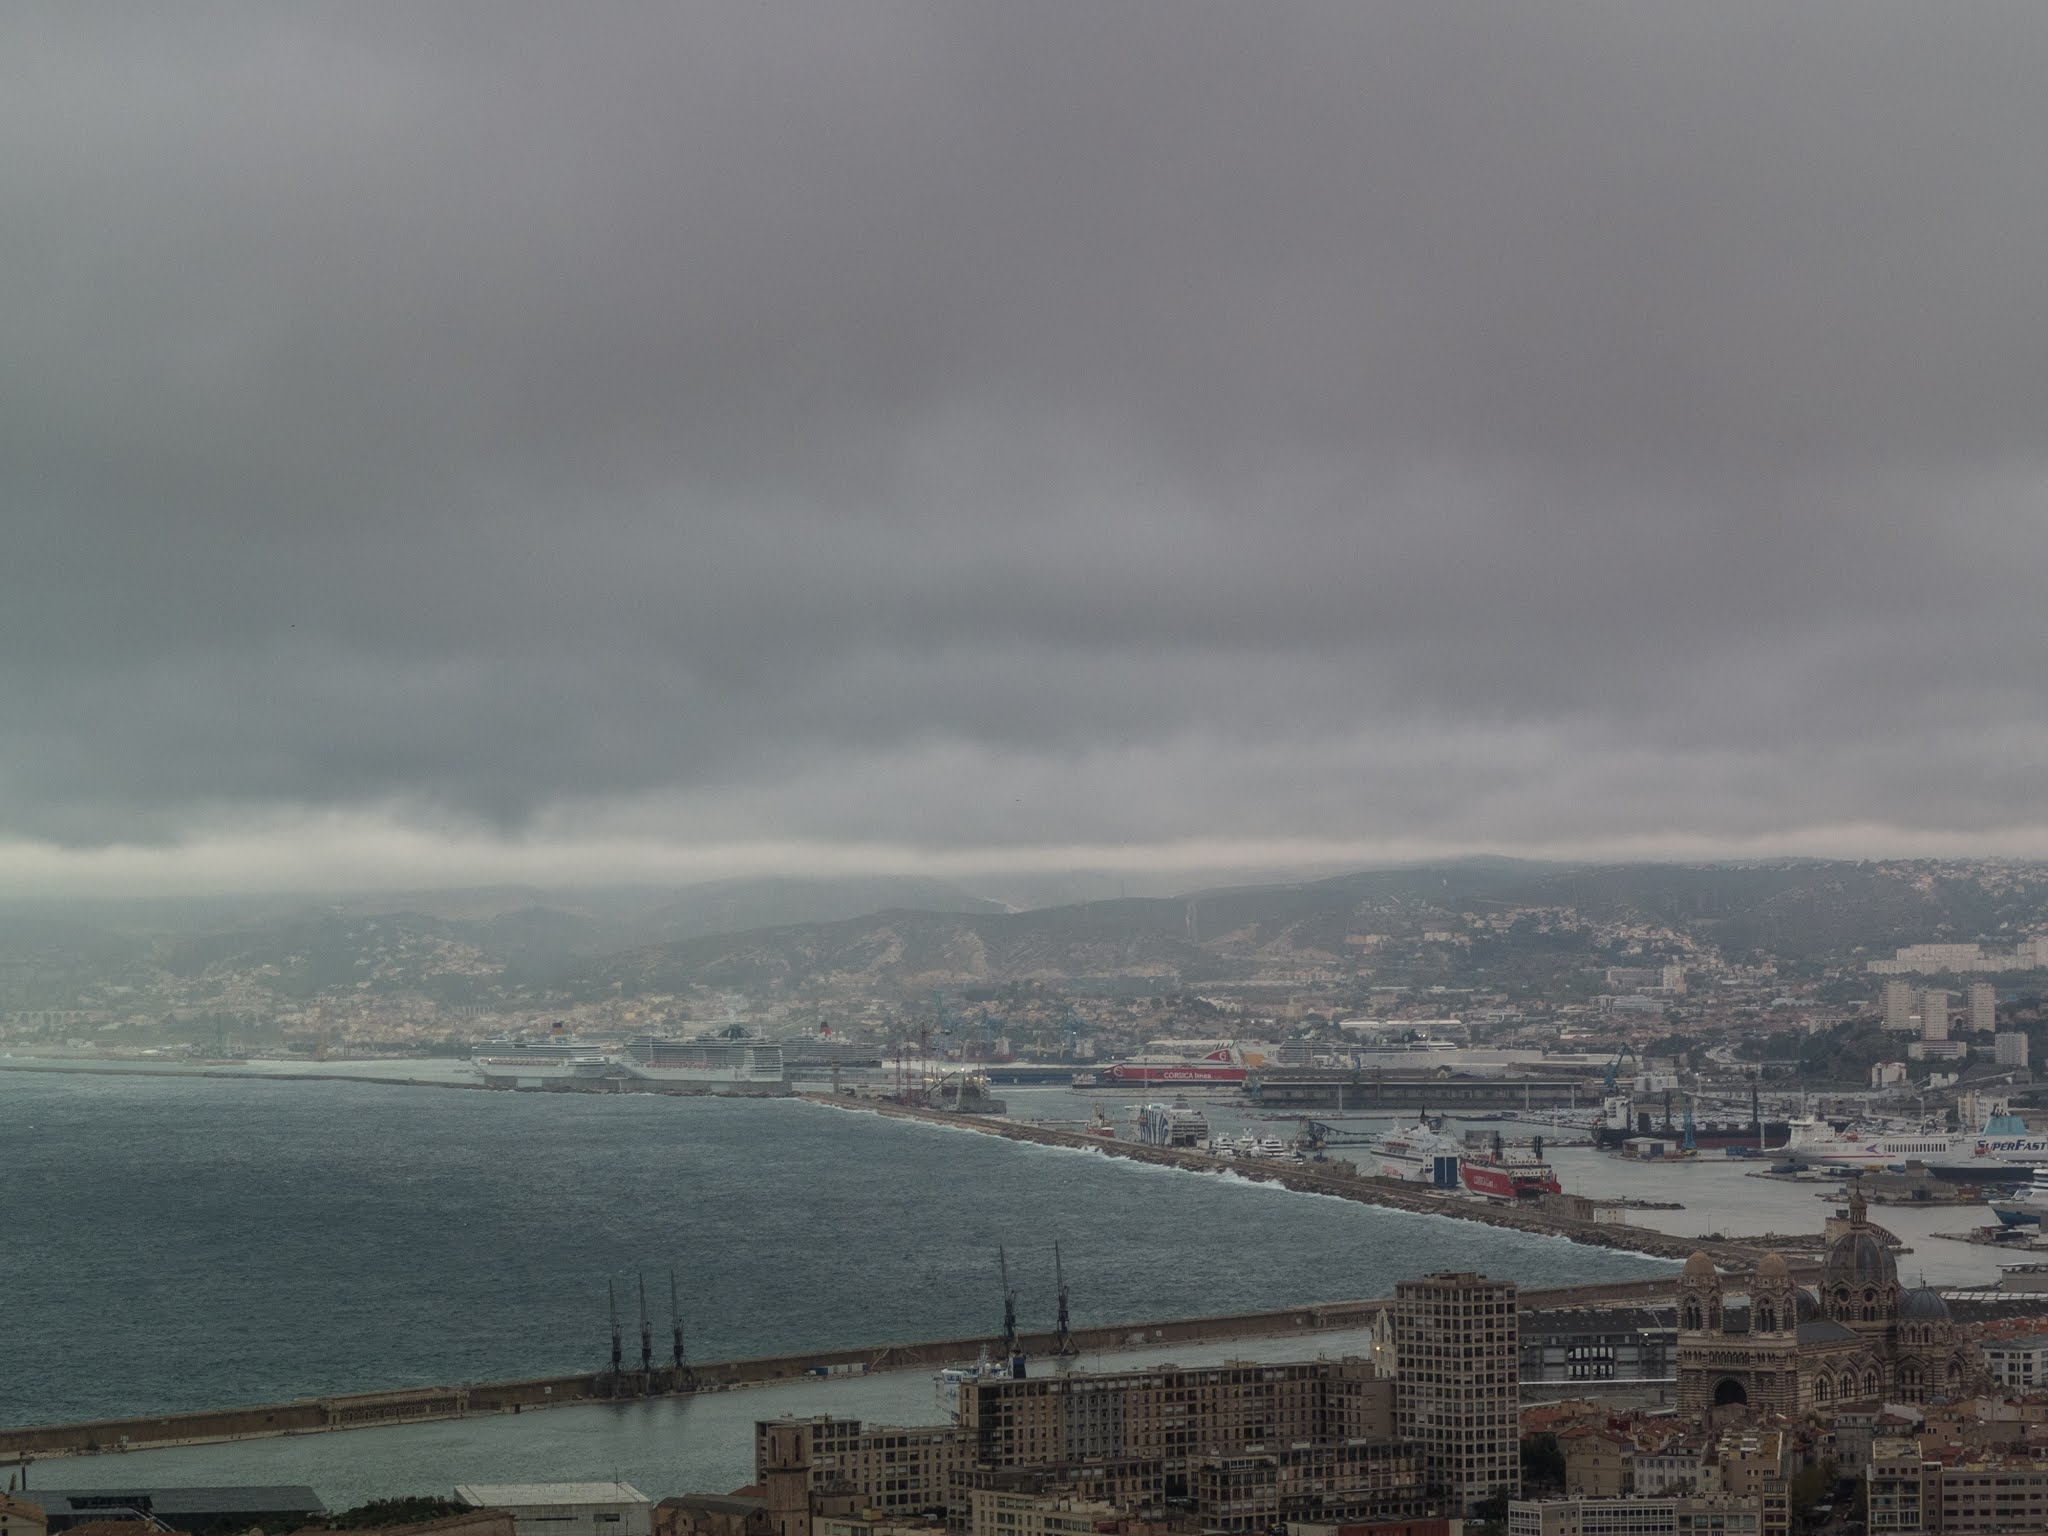 Marseille harbour seen from  the Basilica of Notre Dame de la Garde on a cloudy day.